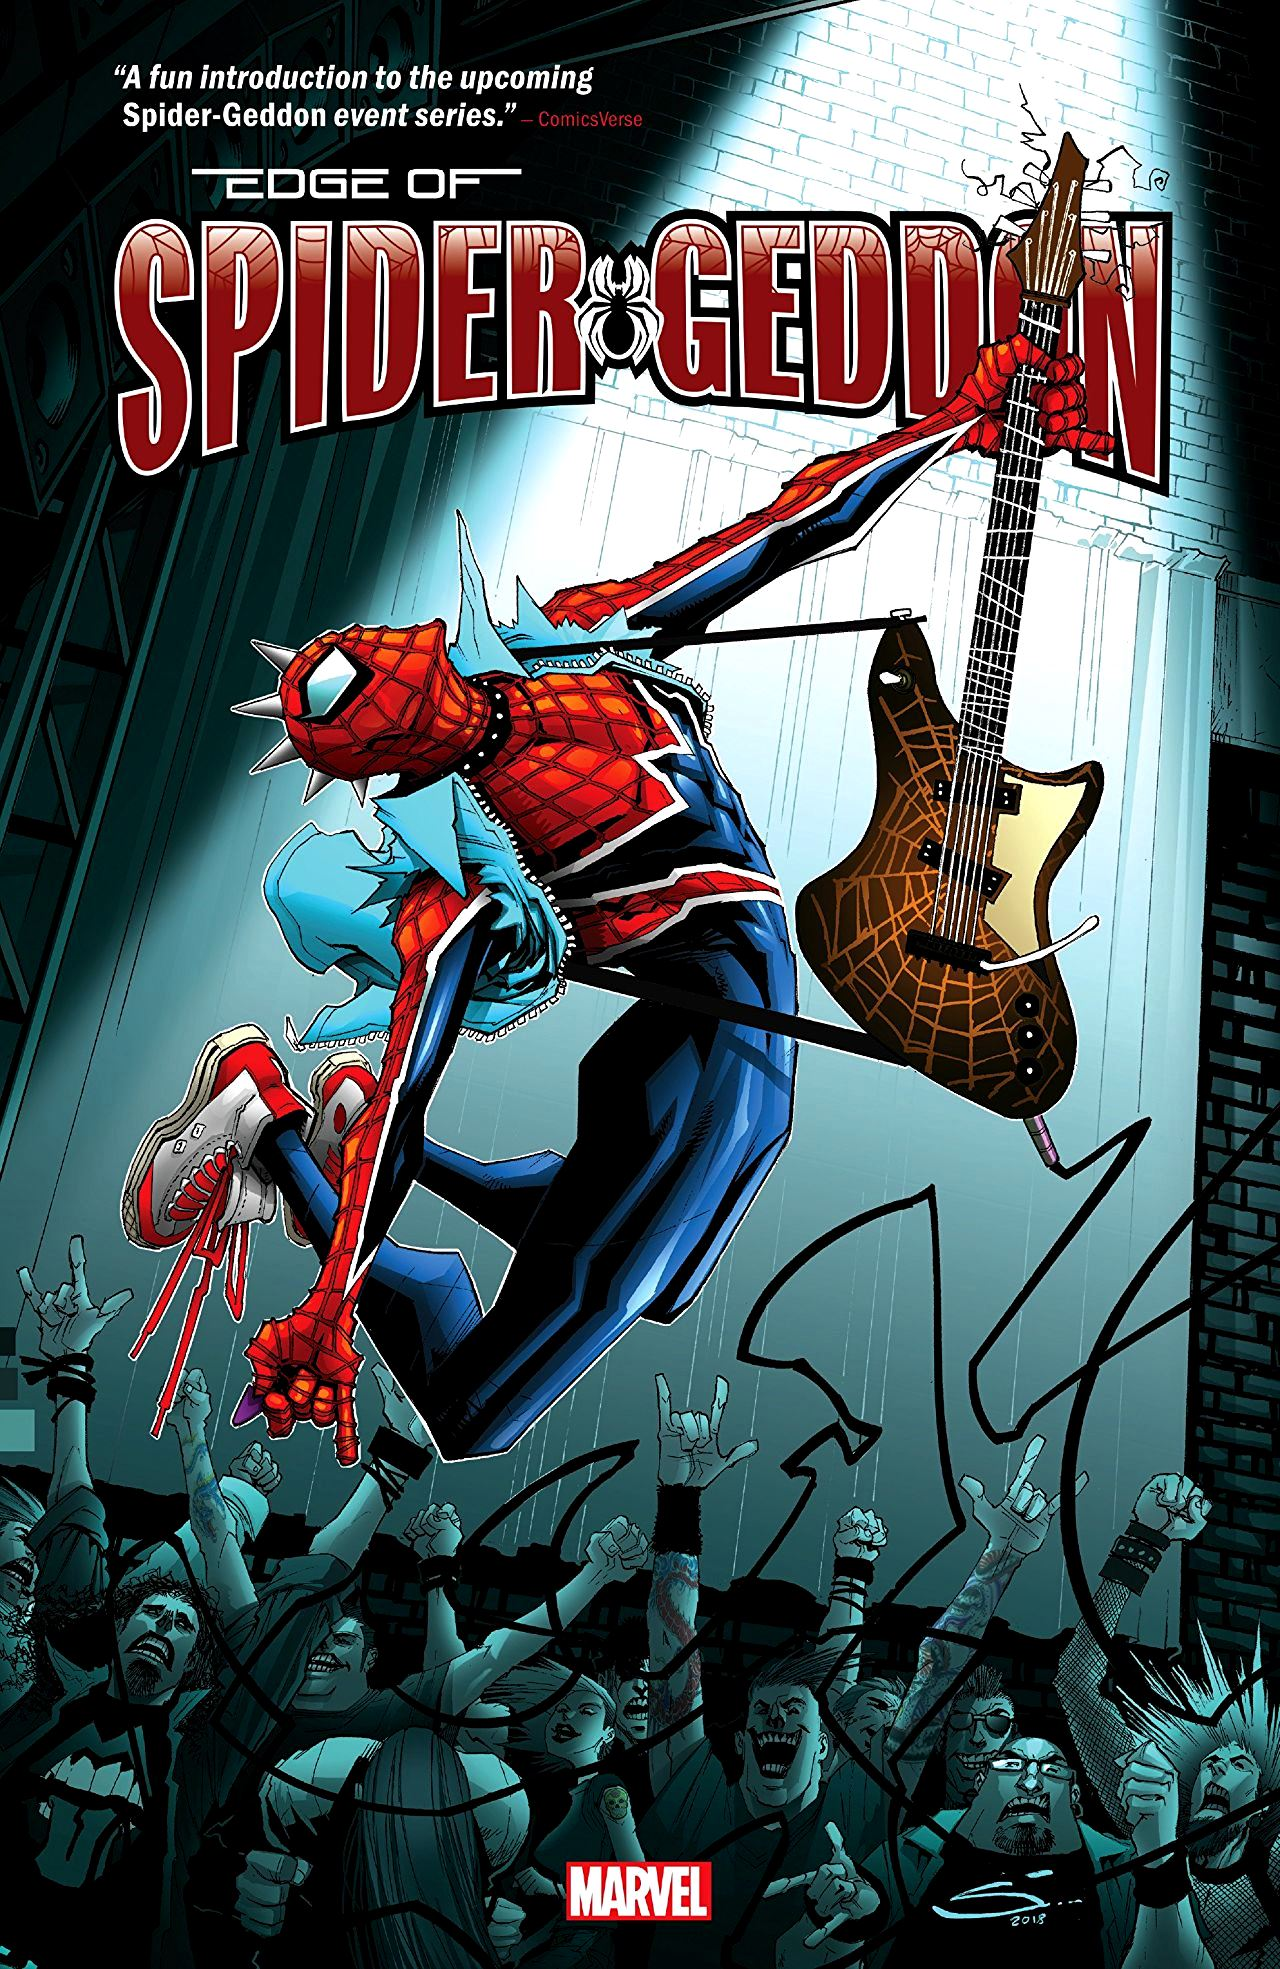 Spider-Geddon (2018): Edge of Spider-Geddon